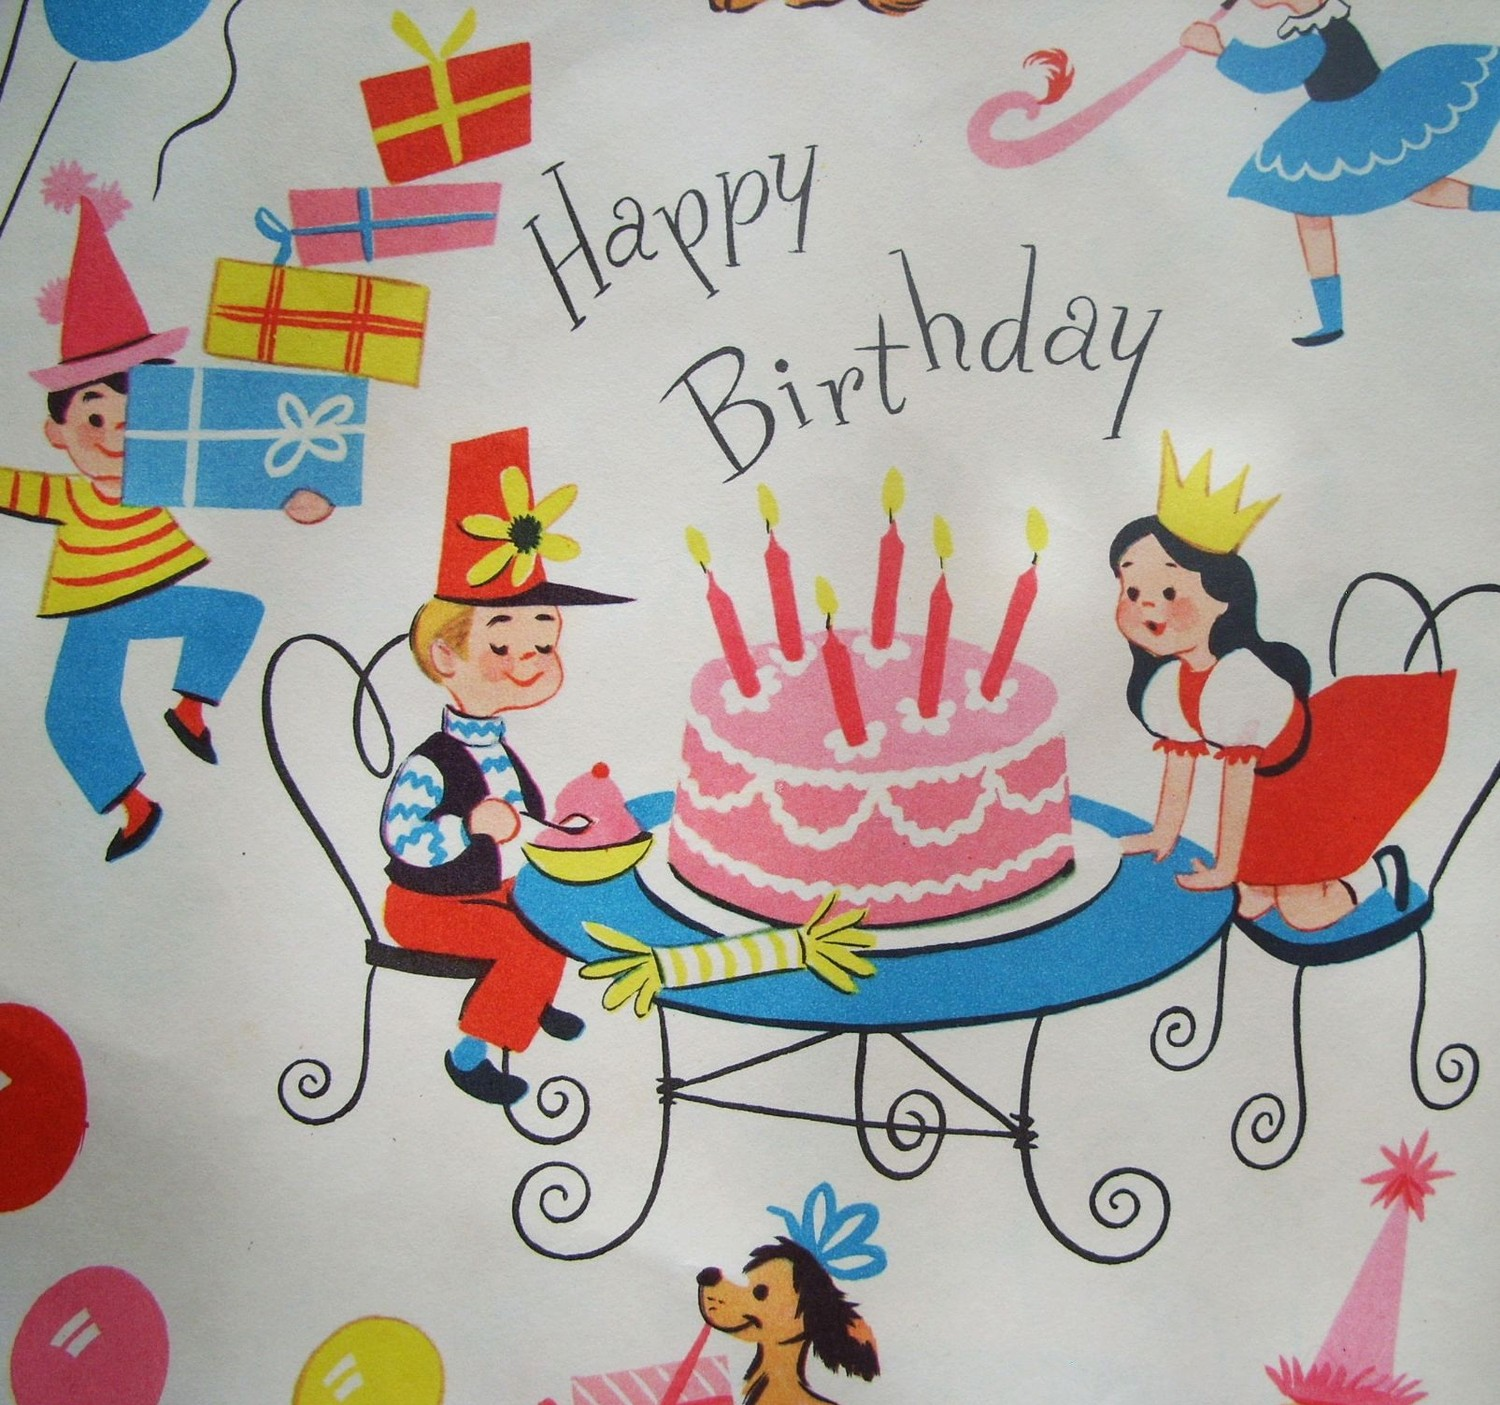 Lovely Birthday Wishes That Can Make Your Niece Happy On Her